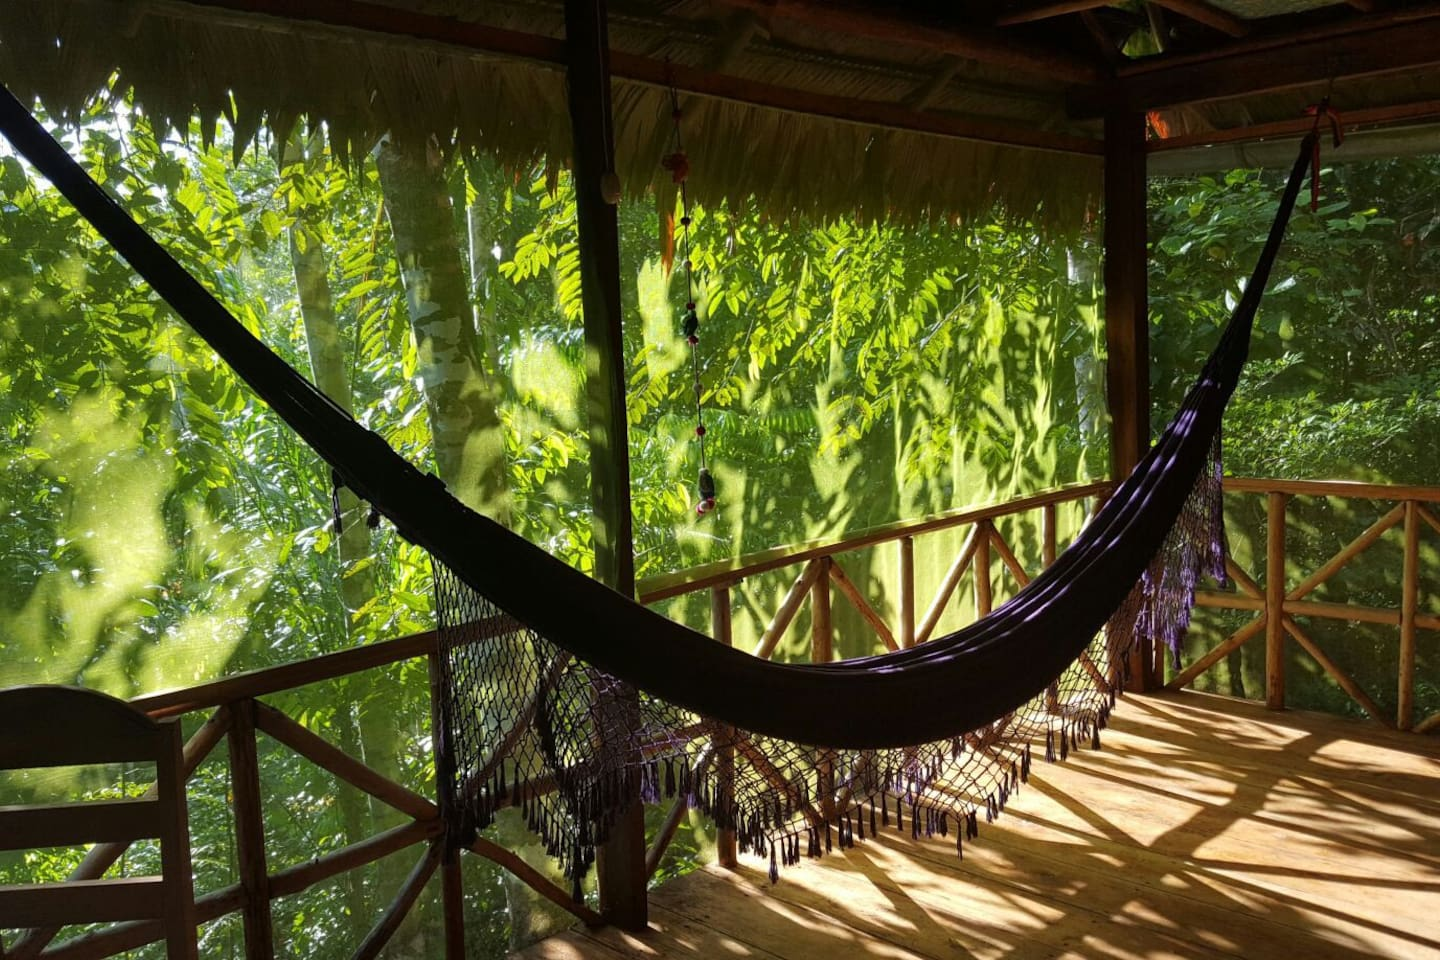 Enjoy downtime or meditate during your plant diet on the upper balcony, that is perfectly protected with mosquito netting. You can watch the wildlife from here.. many colourful birds and sometimes little monkeys come for a visit.